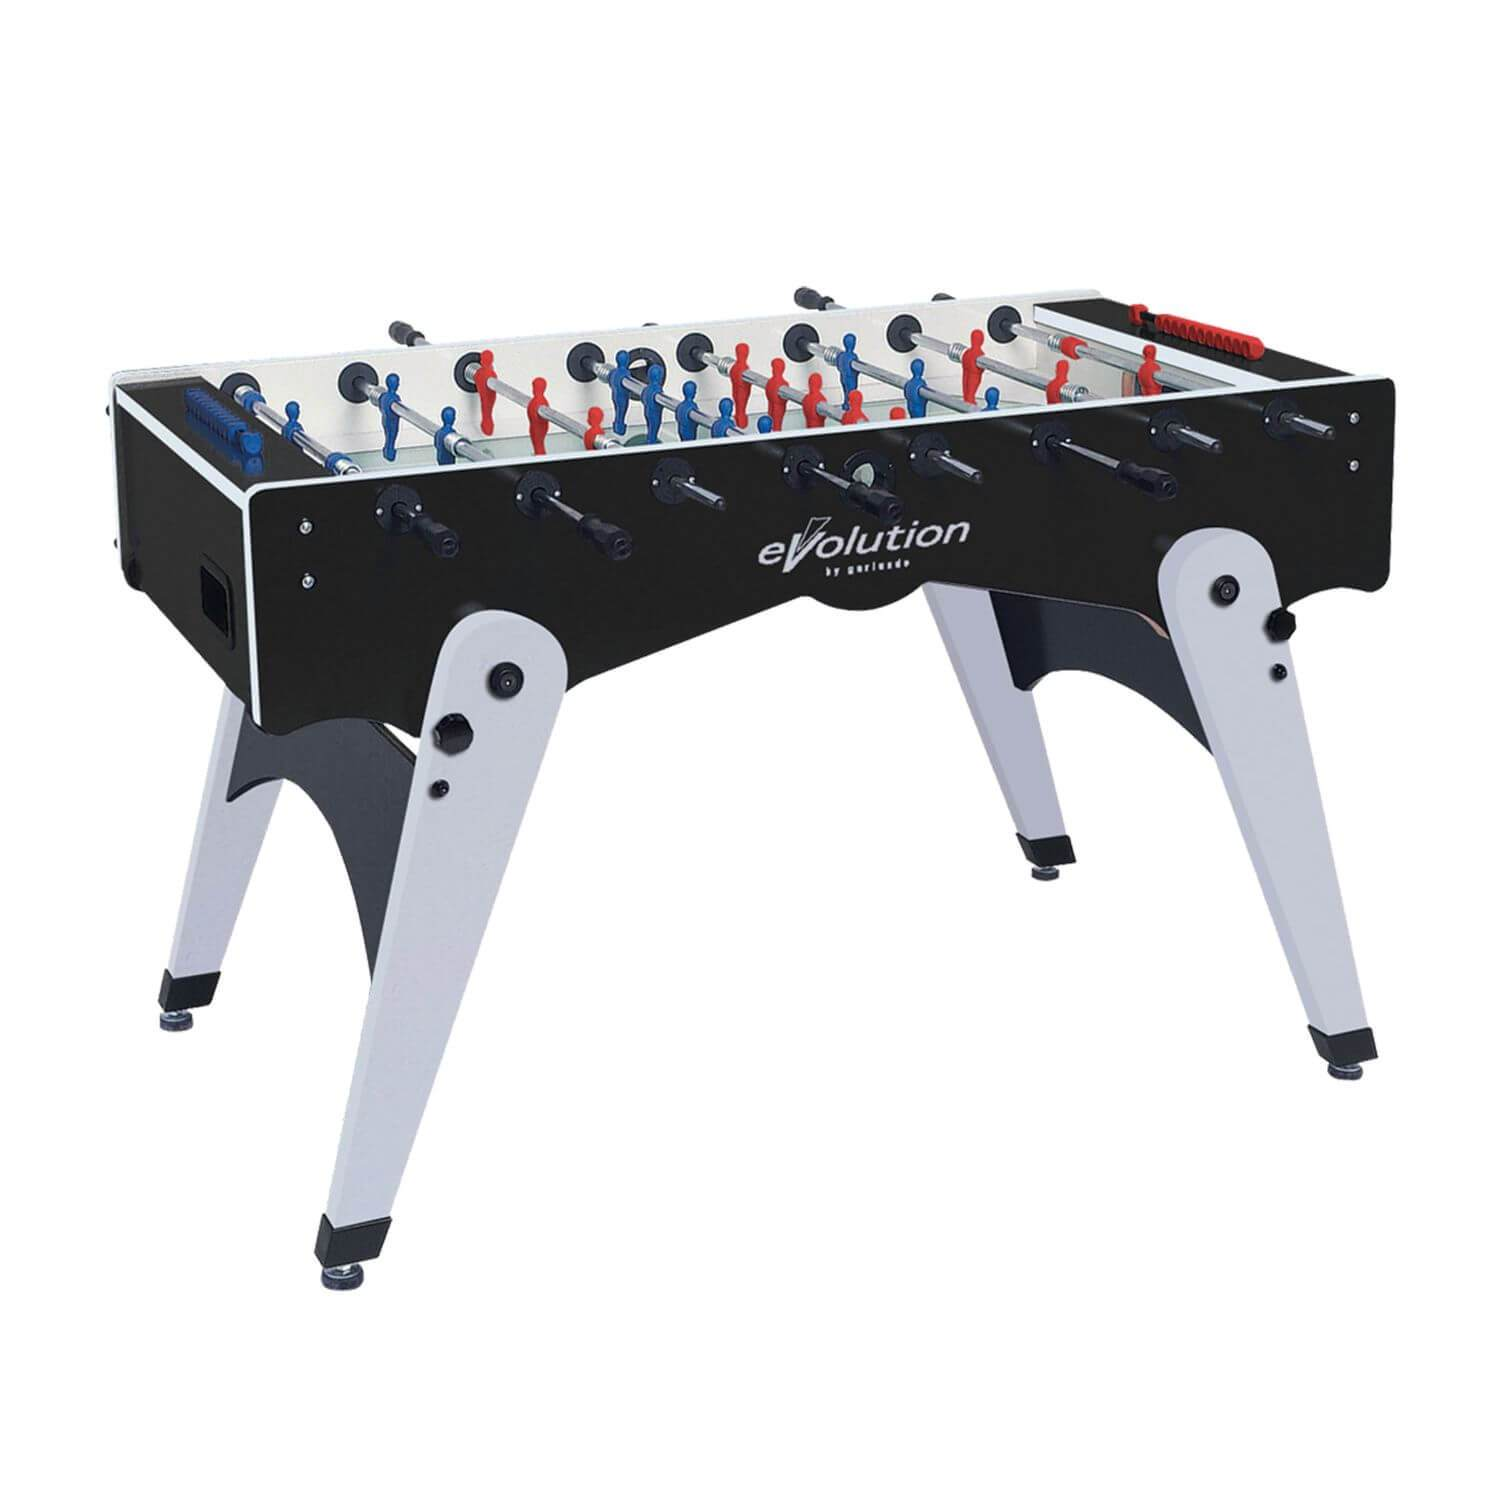 Garlando Foldy Evolution Folding Foosball Table - Gaming Blaze